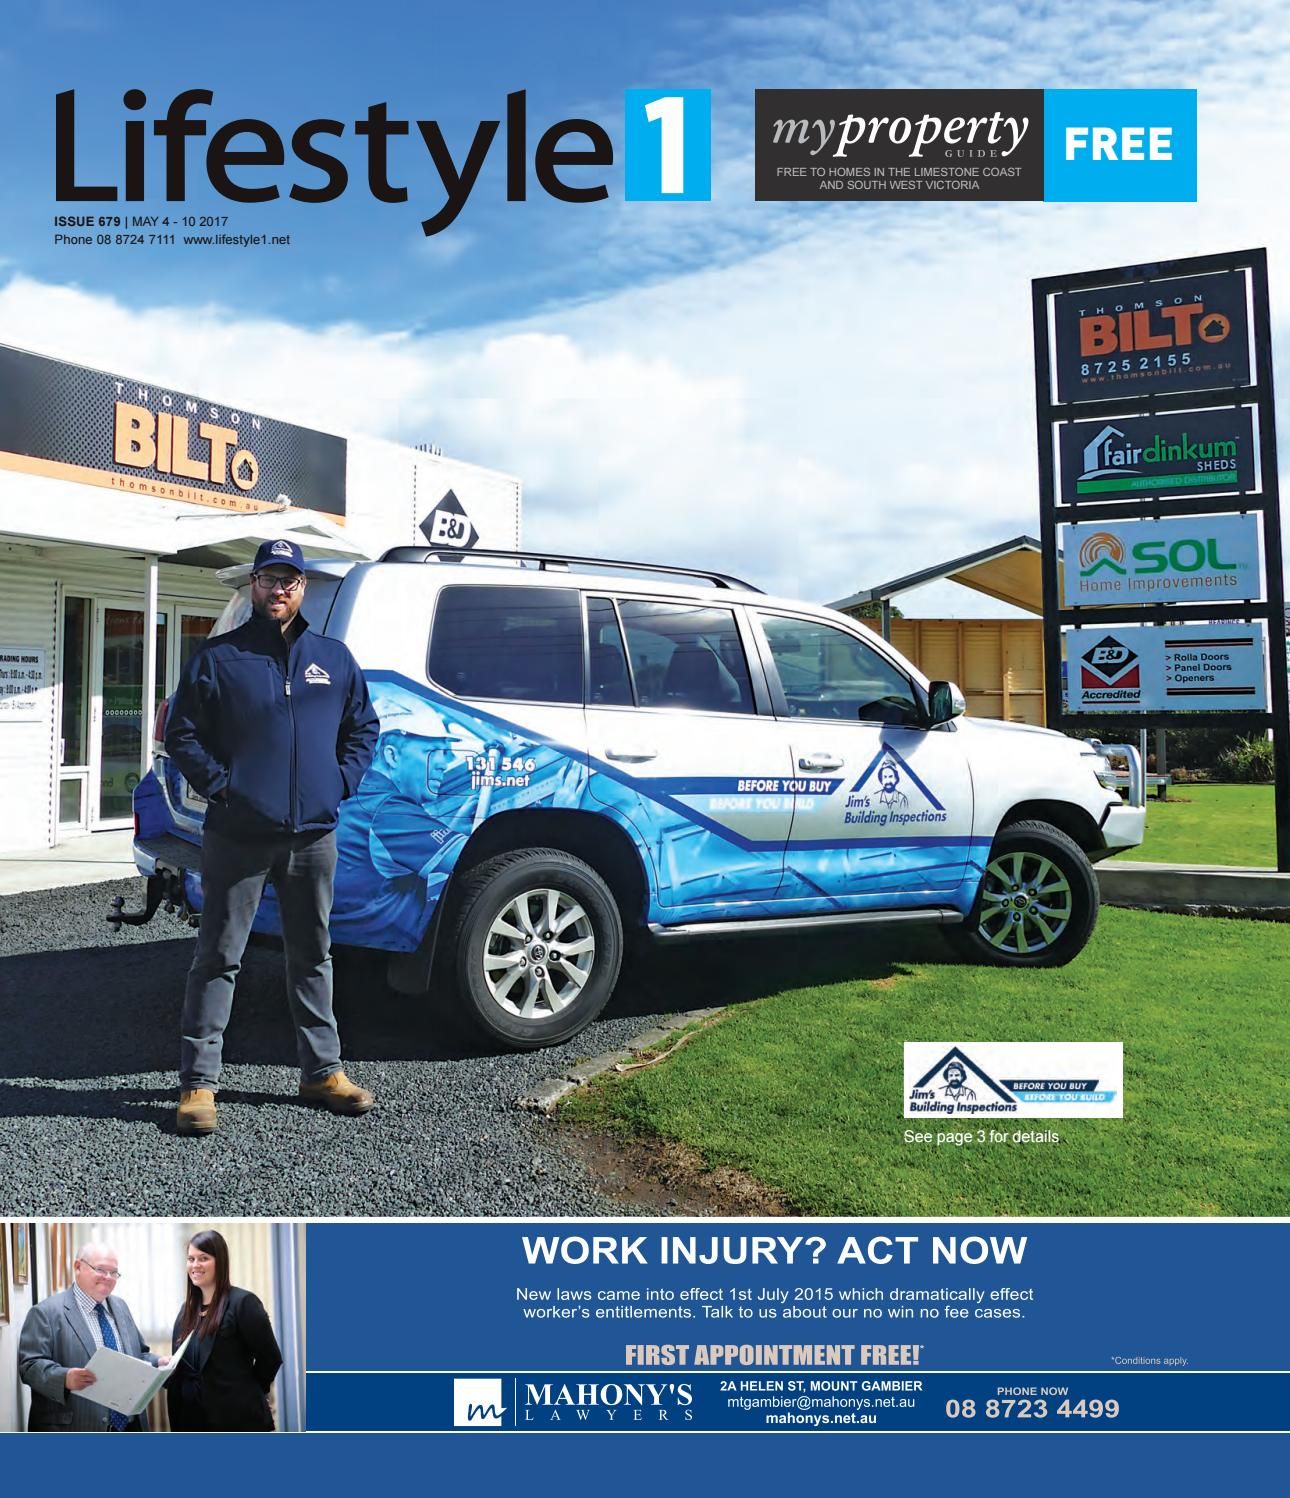 Lifestyle 1 issue 679 by Lifestyle1 - issuu